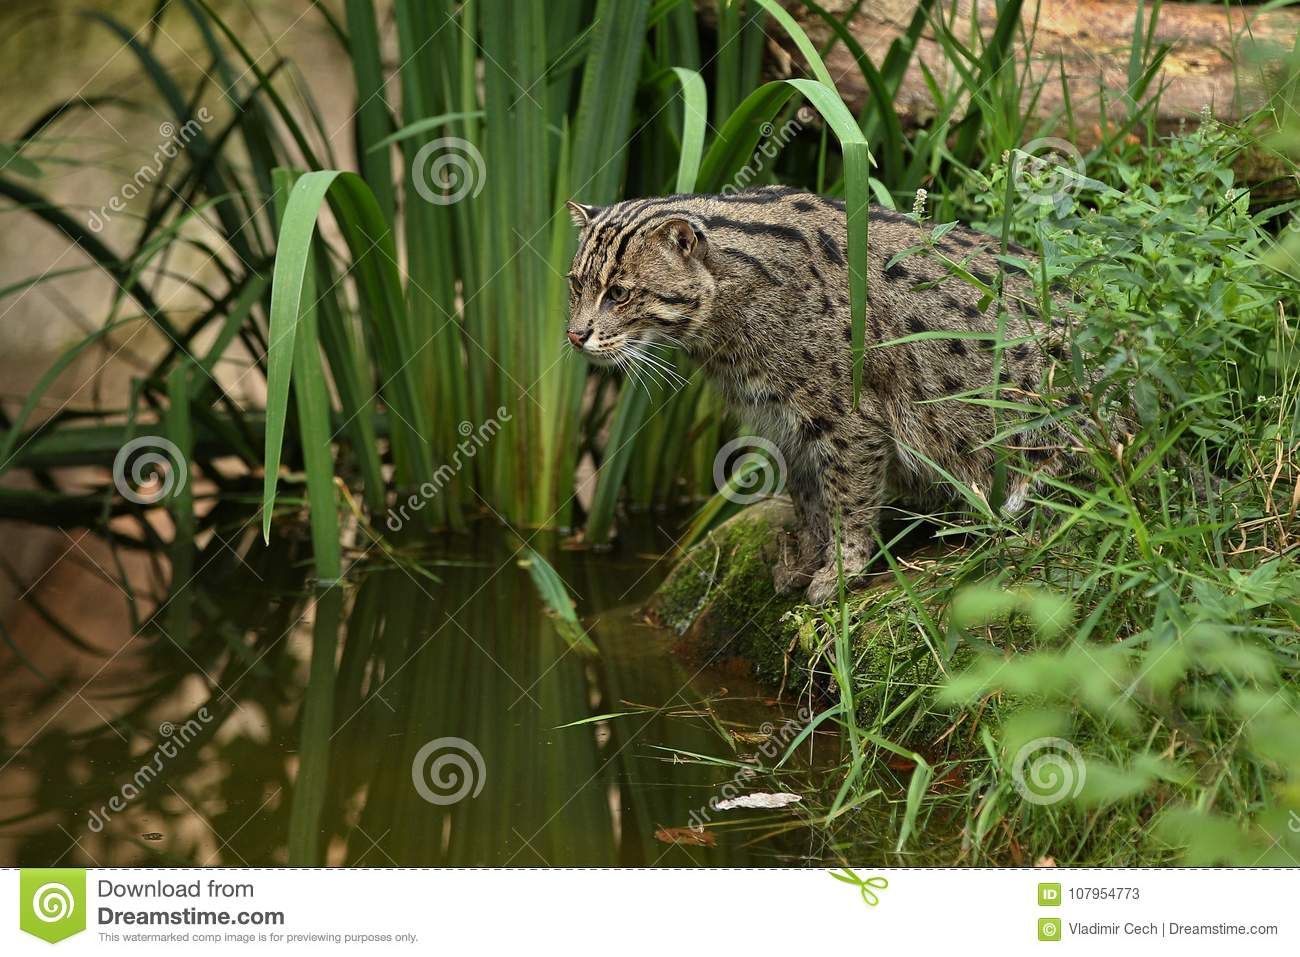 Beautiful and elusive fishing cat in the nature habitat near water.